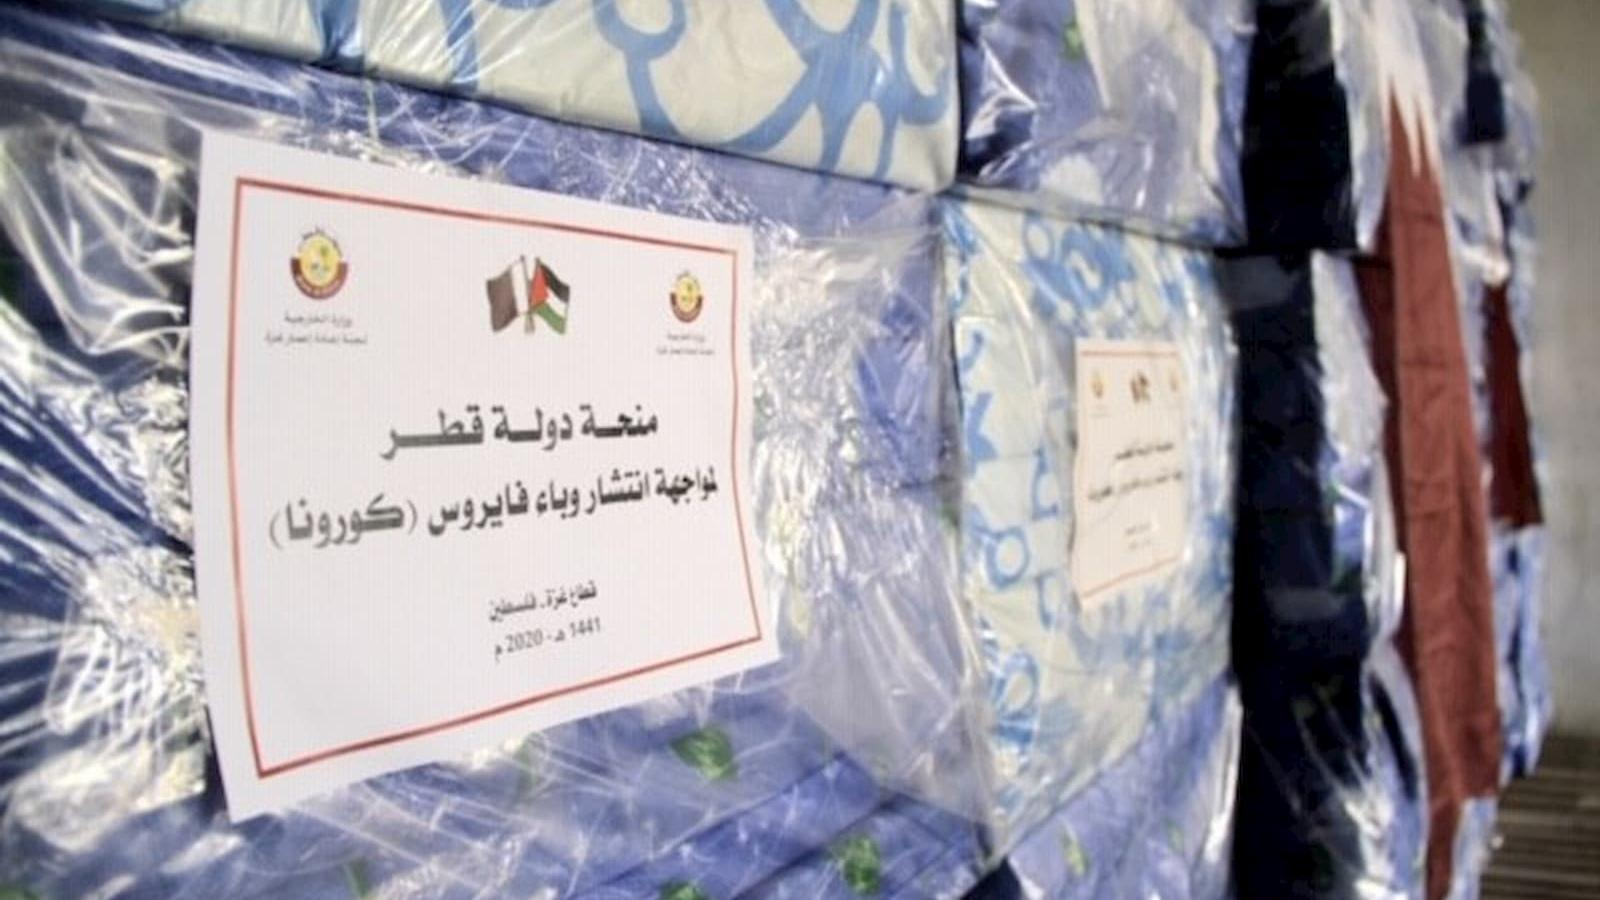 Qatar begins providing assistance to Palestinians in Gaza